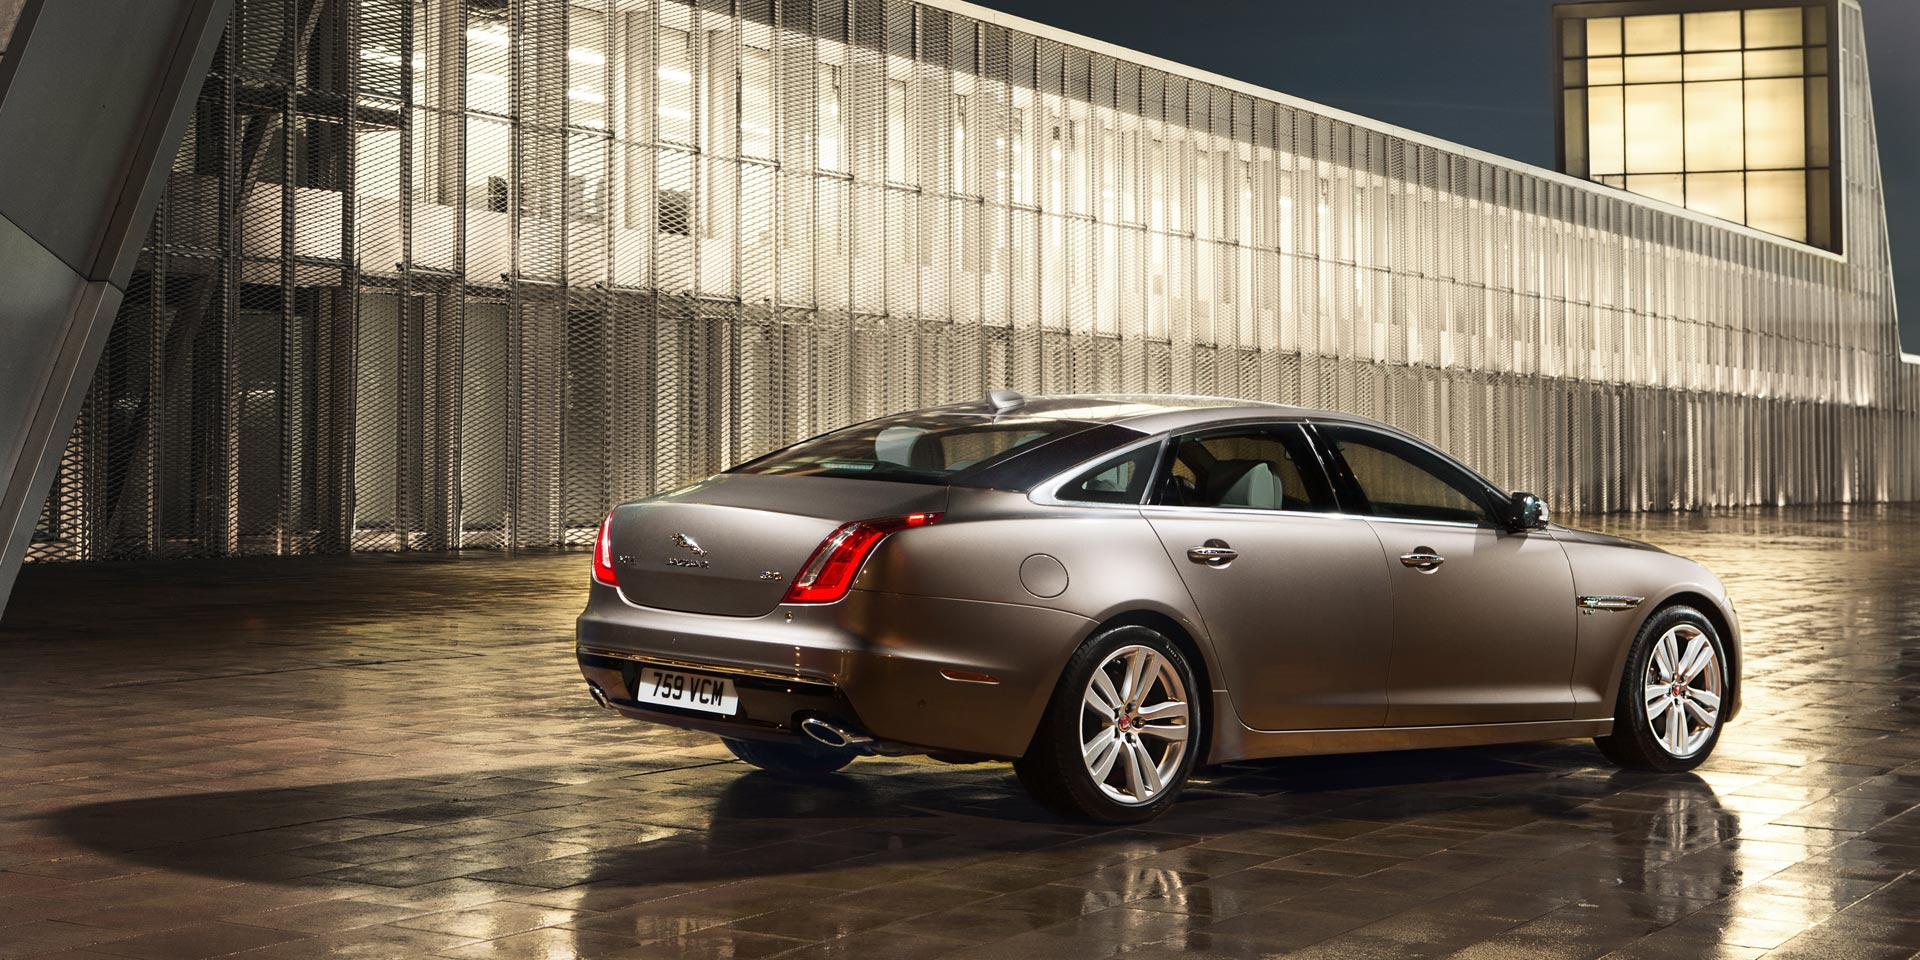 All Types 2016 xj : Used Cars For Sale, New Cars For Sale, Car Dealers, Cars Chicago ...